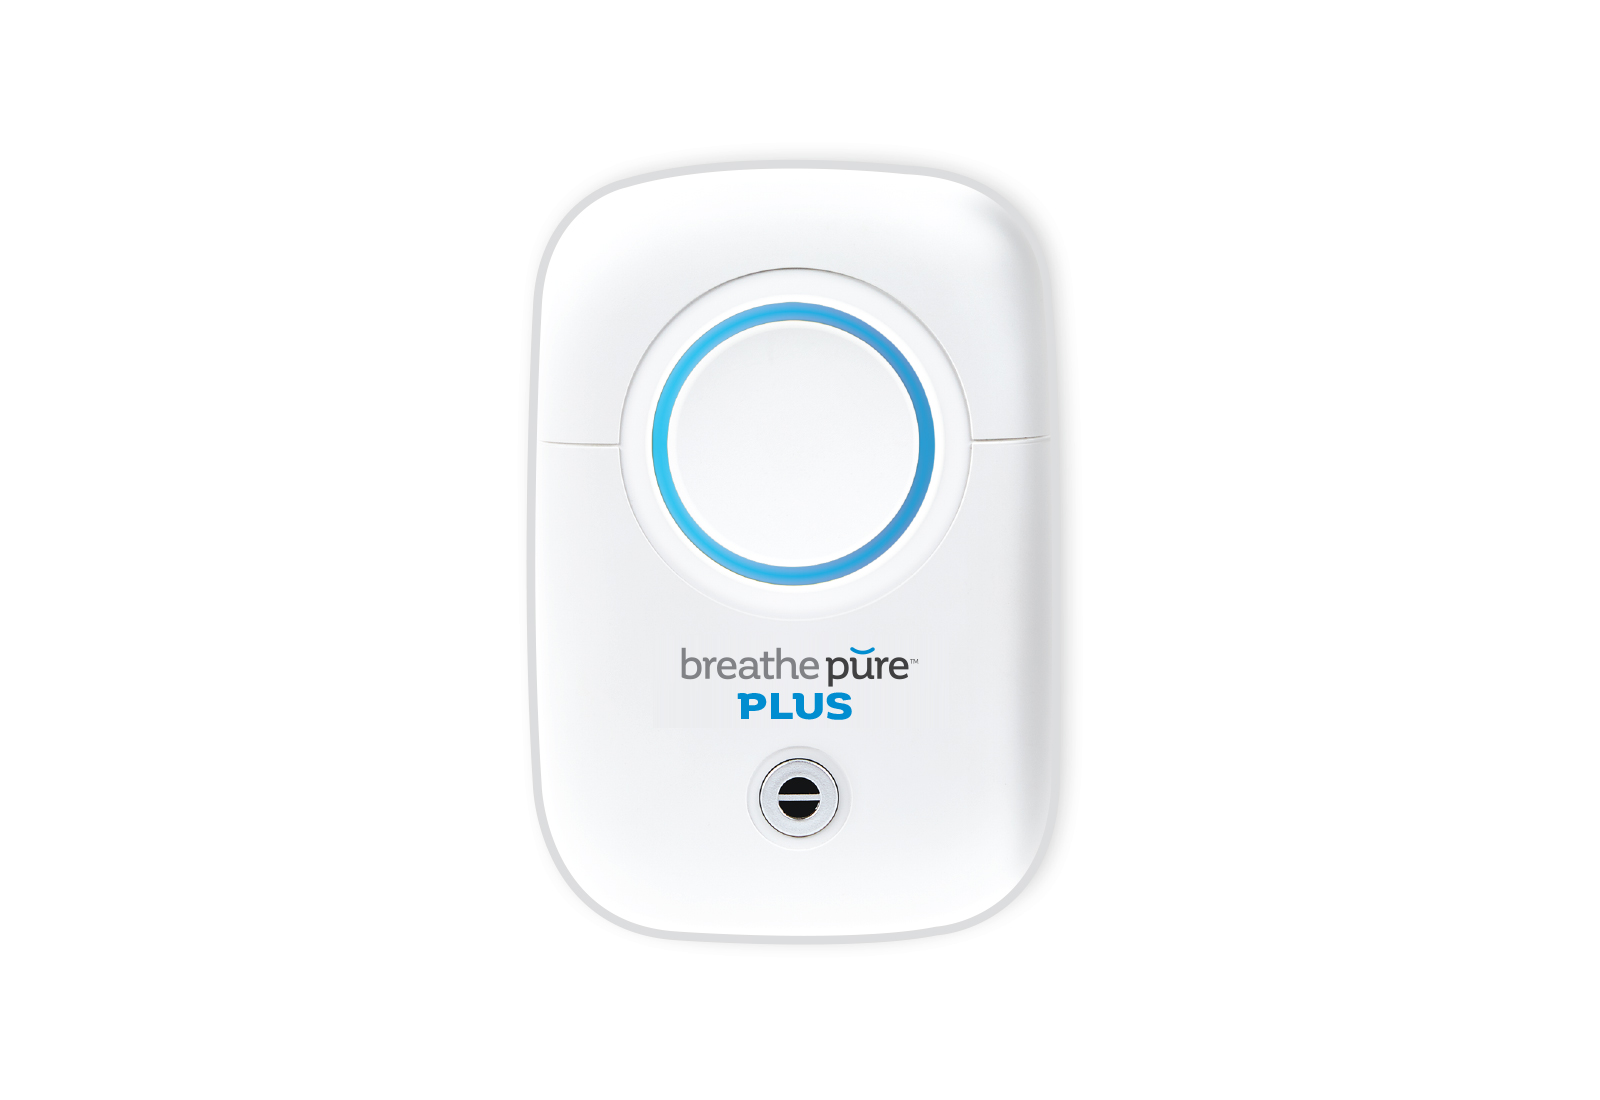 breathe Pure Plus Product Image